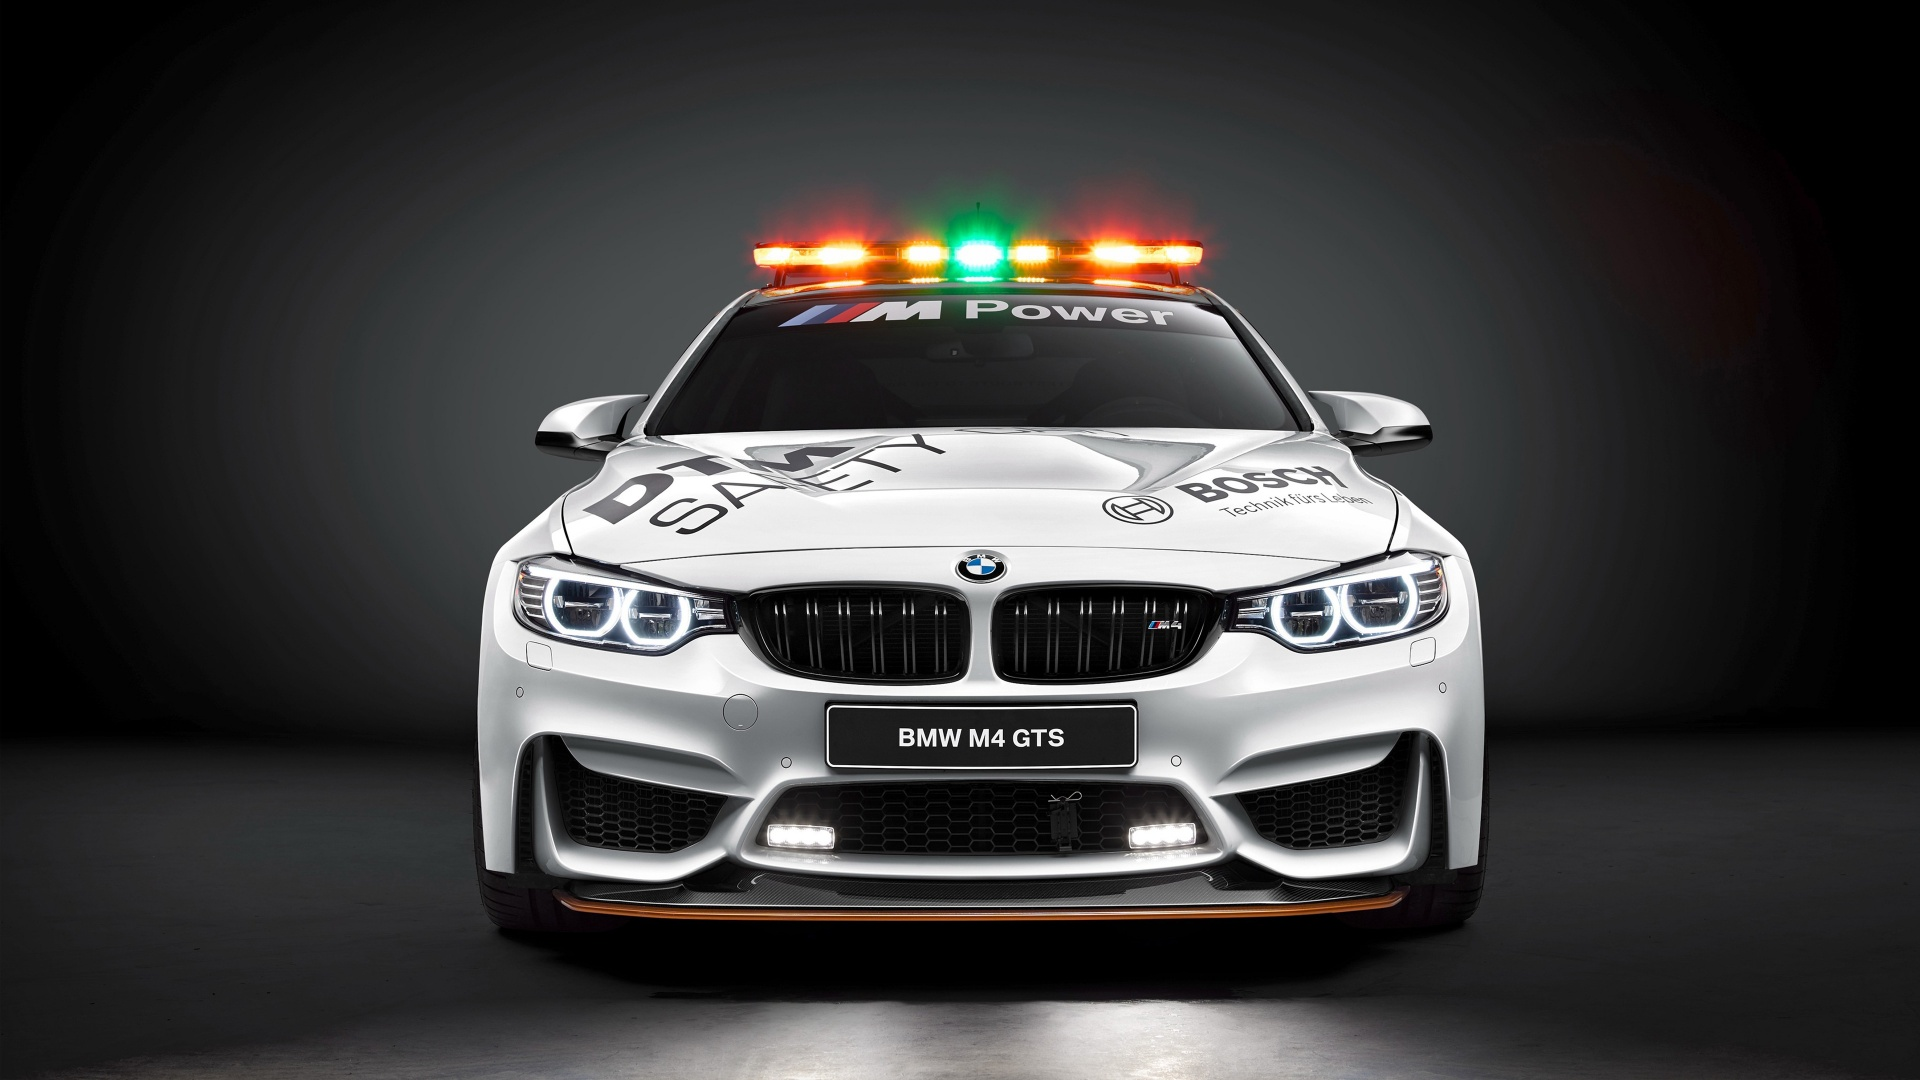 Liberty walk give the bmw m4 a new look. Bmw M4 Gts Safety Car Wallpapers In Jpg Format For Free Download